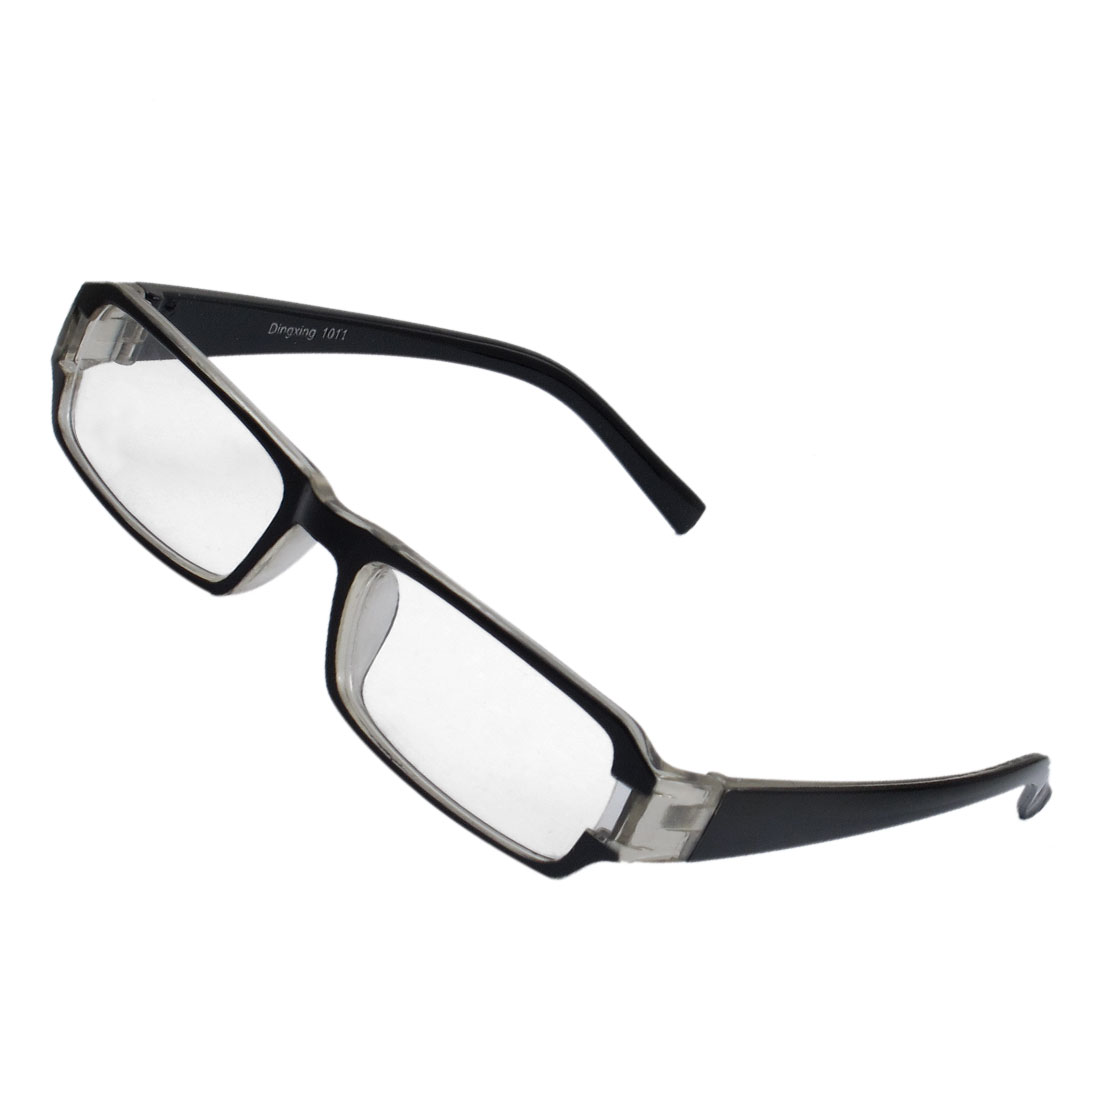 Lady Full Frame Rectangle Lens Plain Plano Glasses Eyeglass Black Gray